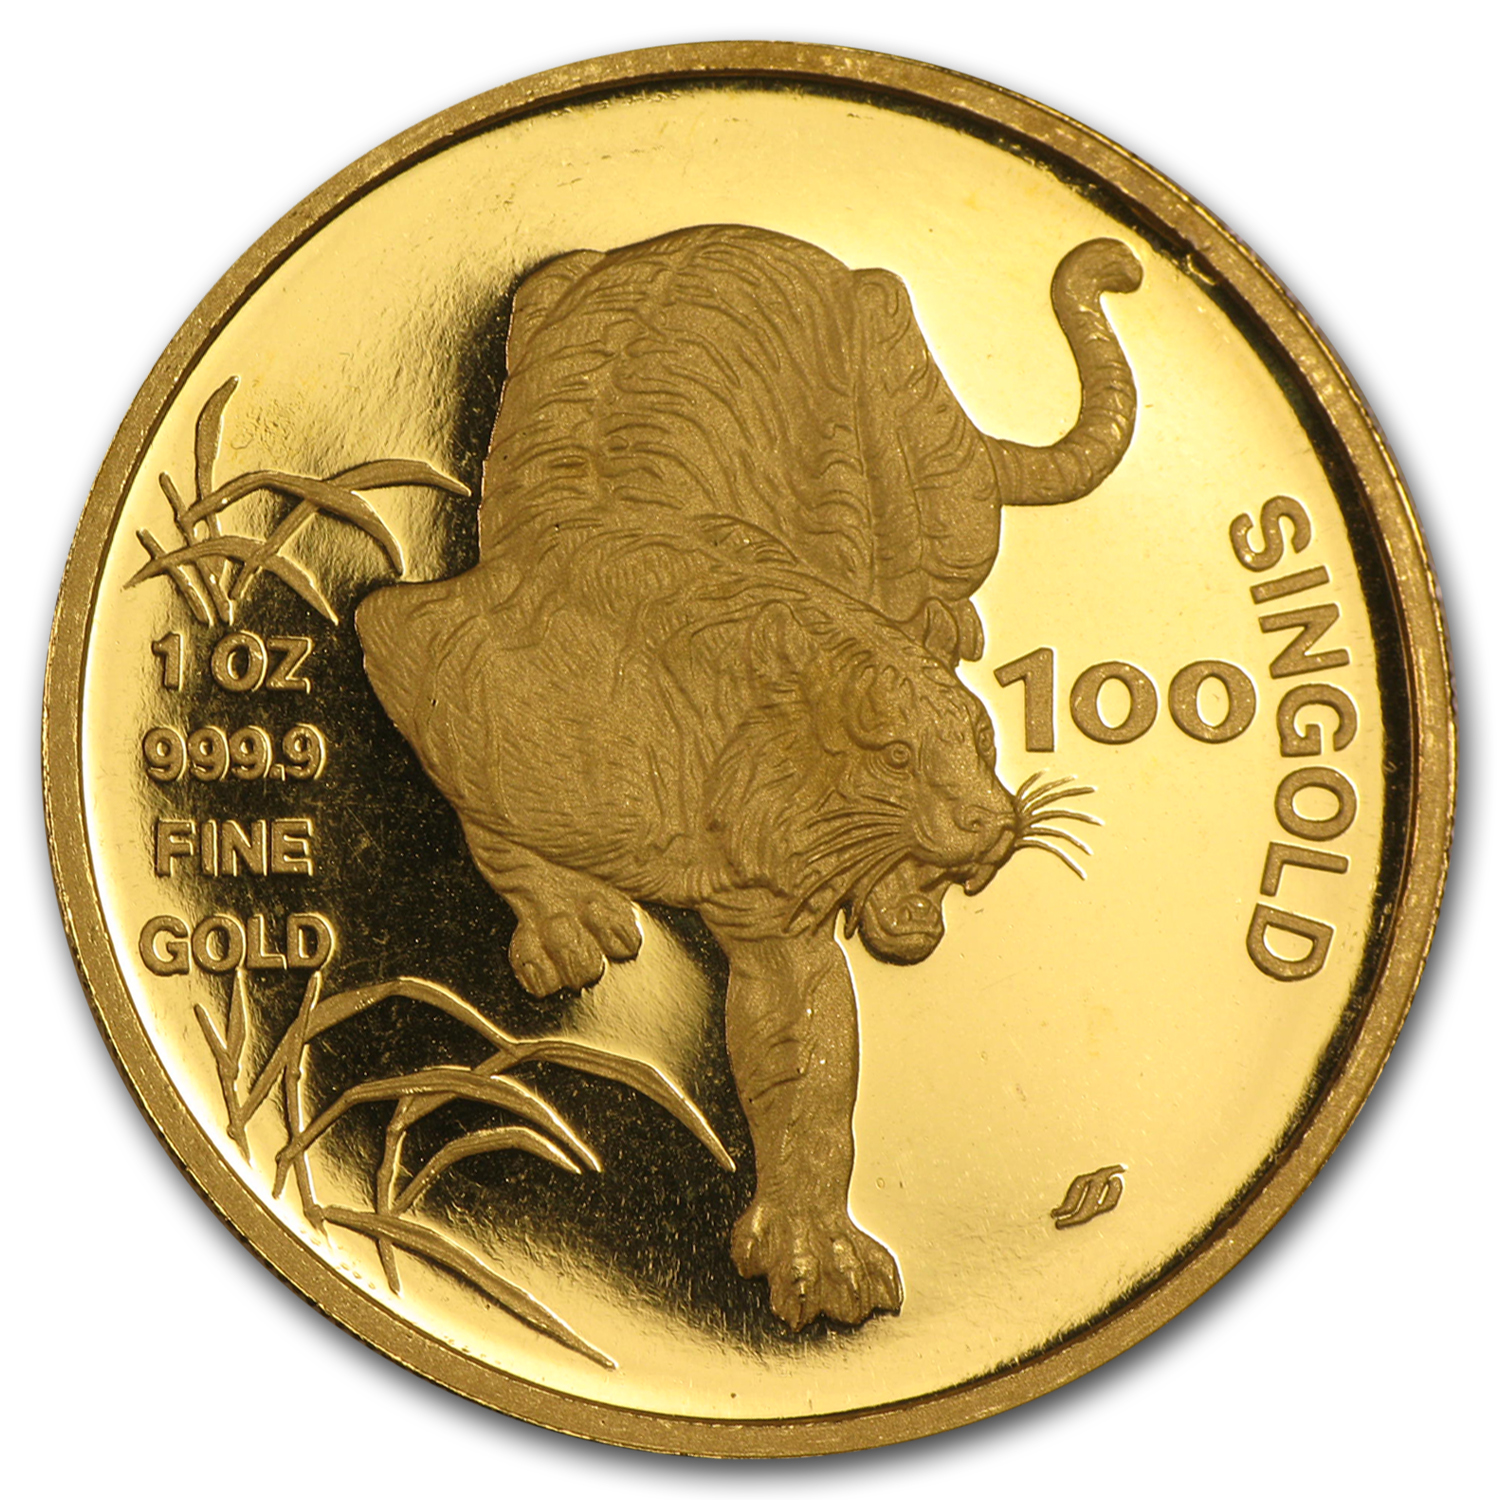 1986 Singapore 1 oz Gold 100 Singold Tiger Proof-Like